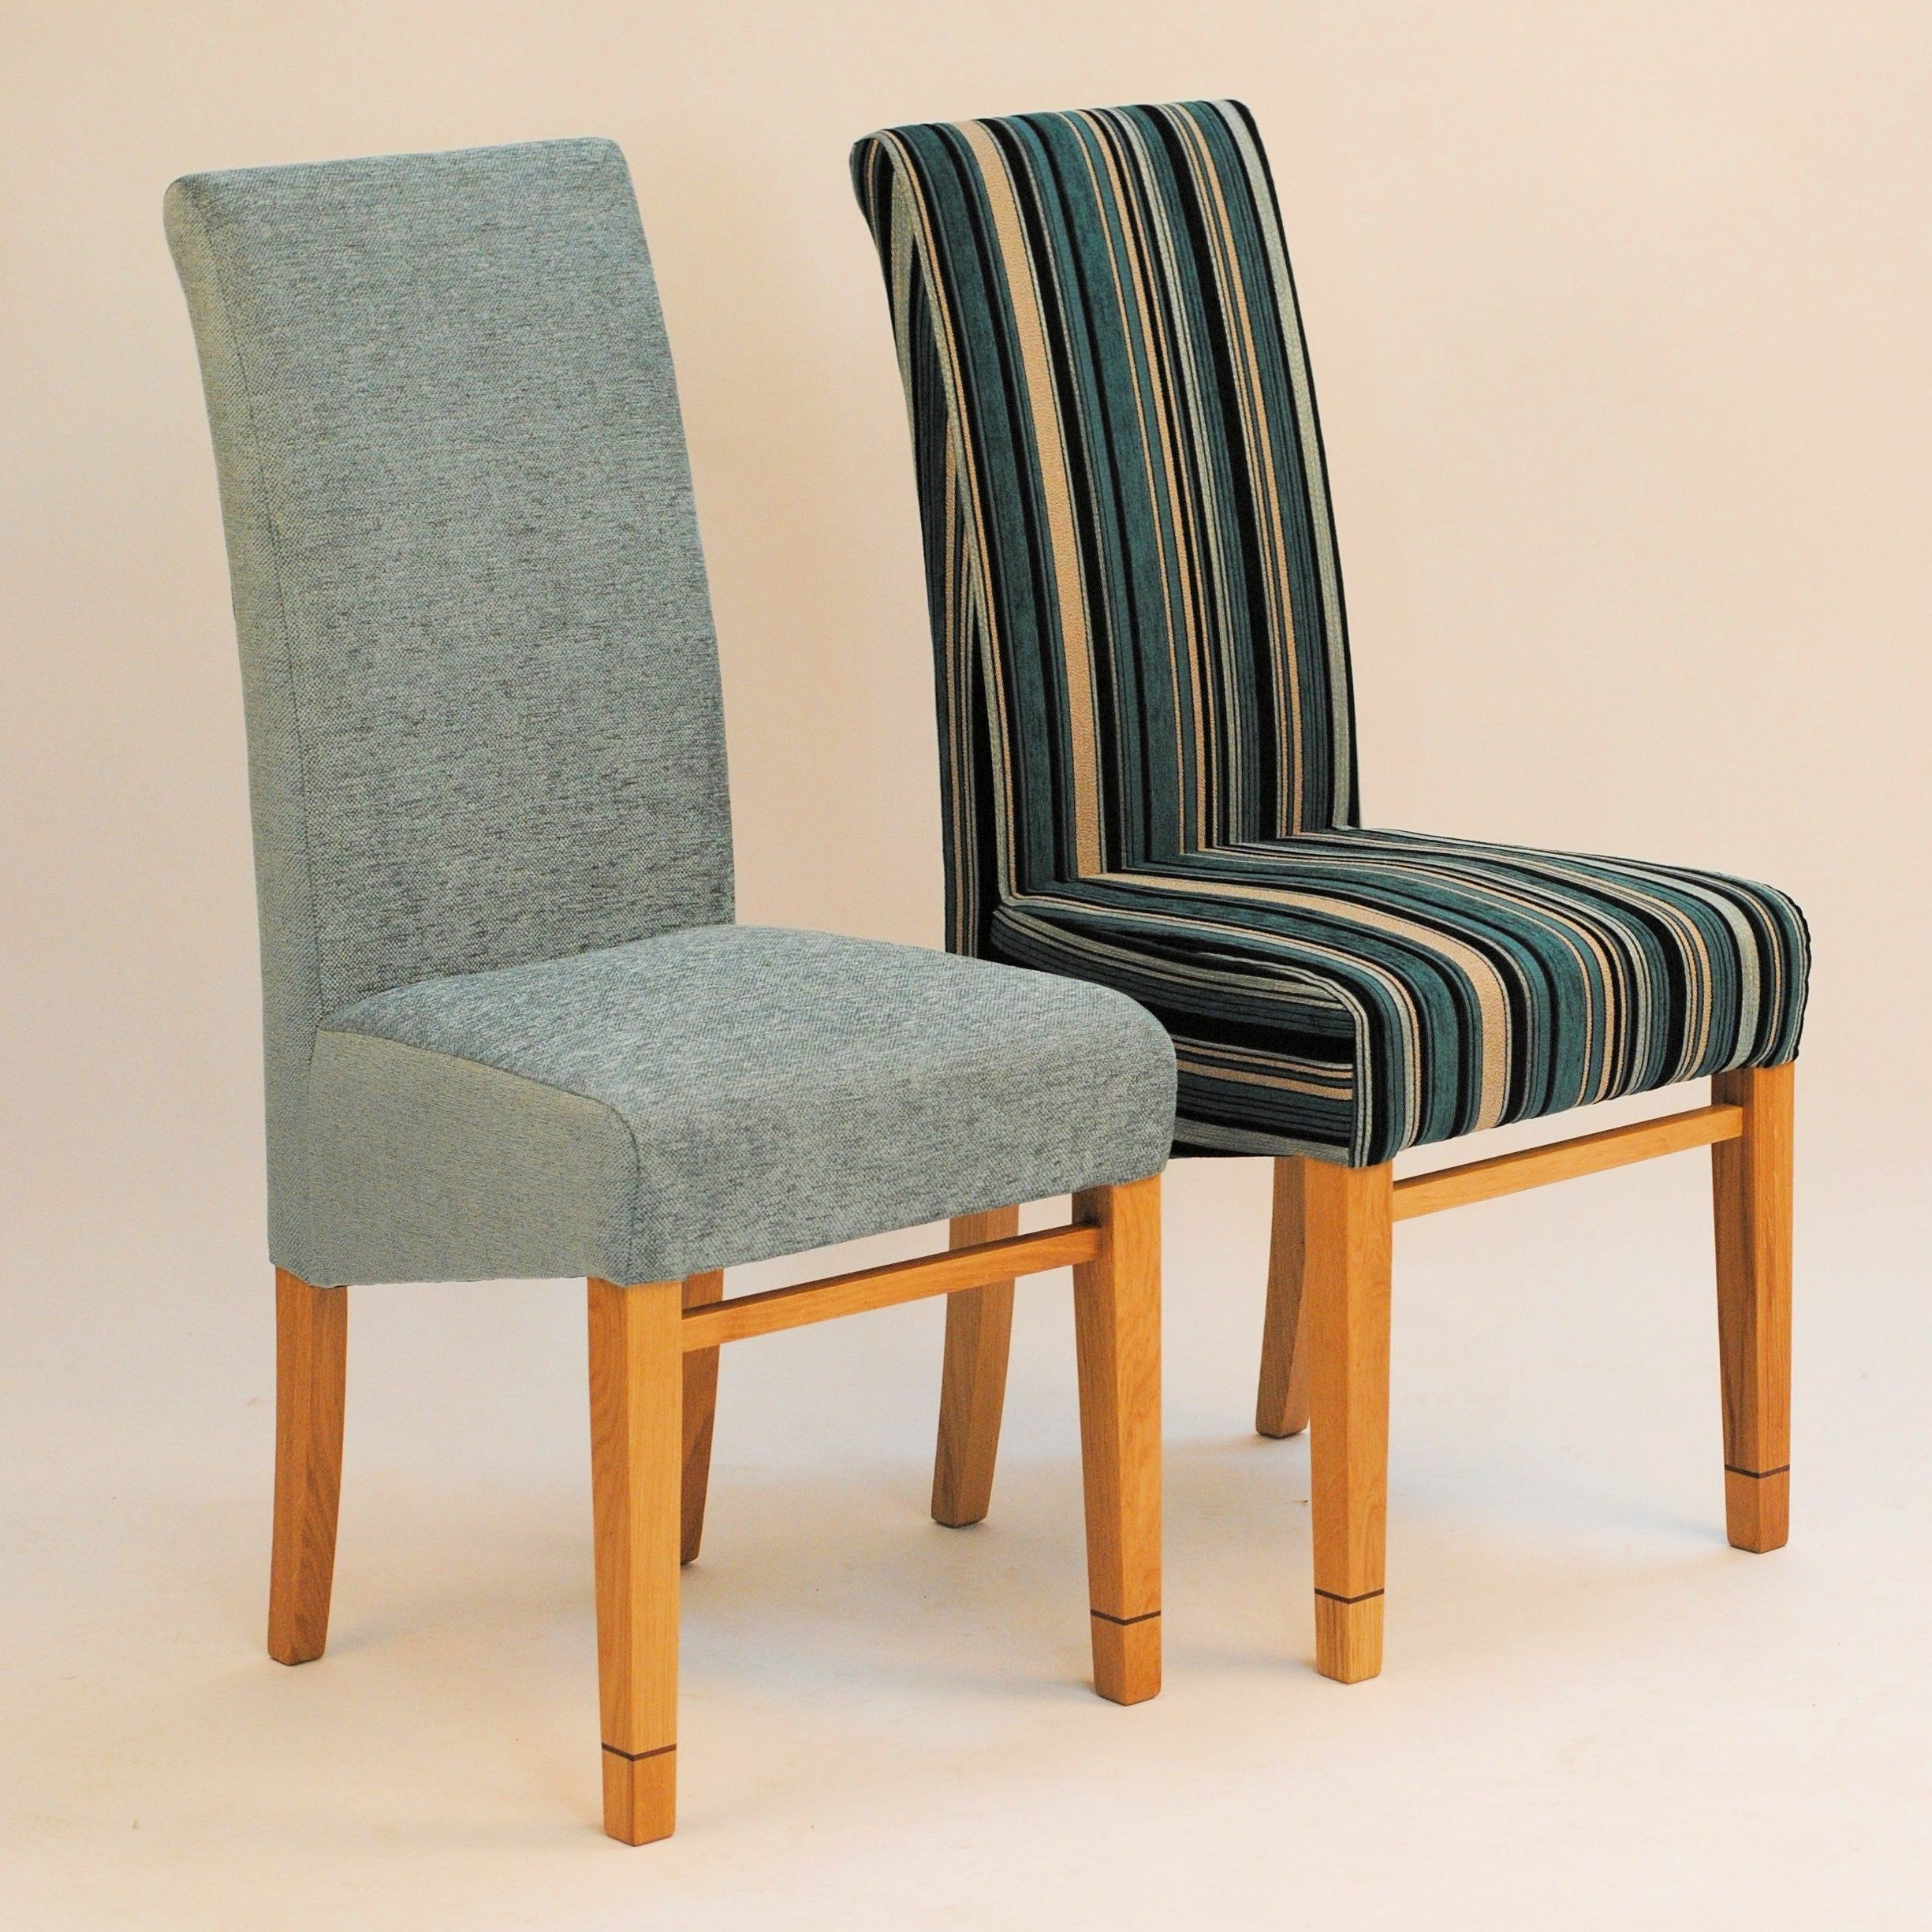 Favorite Oak Fabric Dining Chairs In Oak Dining Table & 4 Chairs – Tanner Furniture Designs (View 8 of 25)